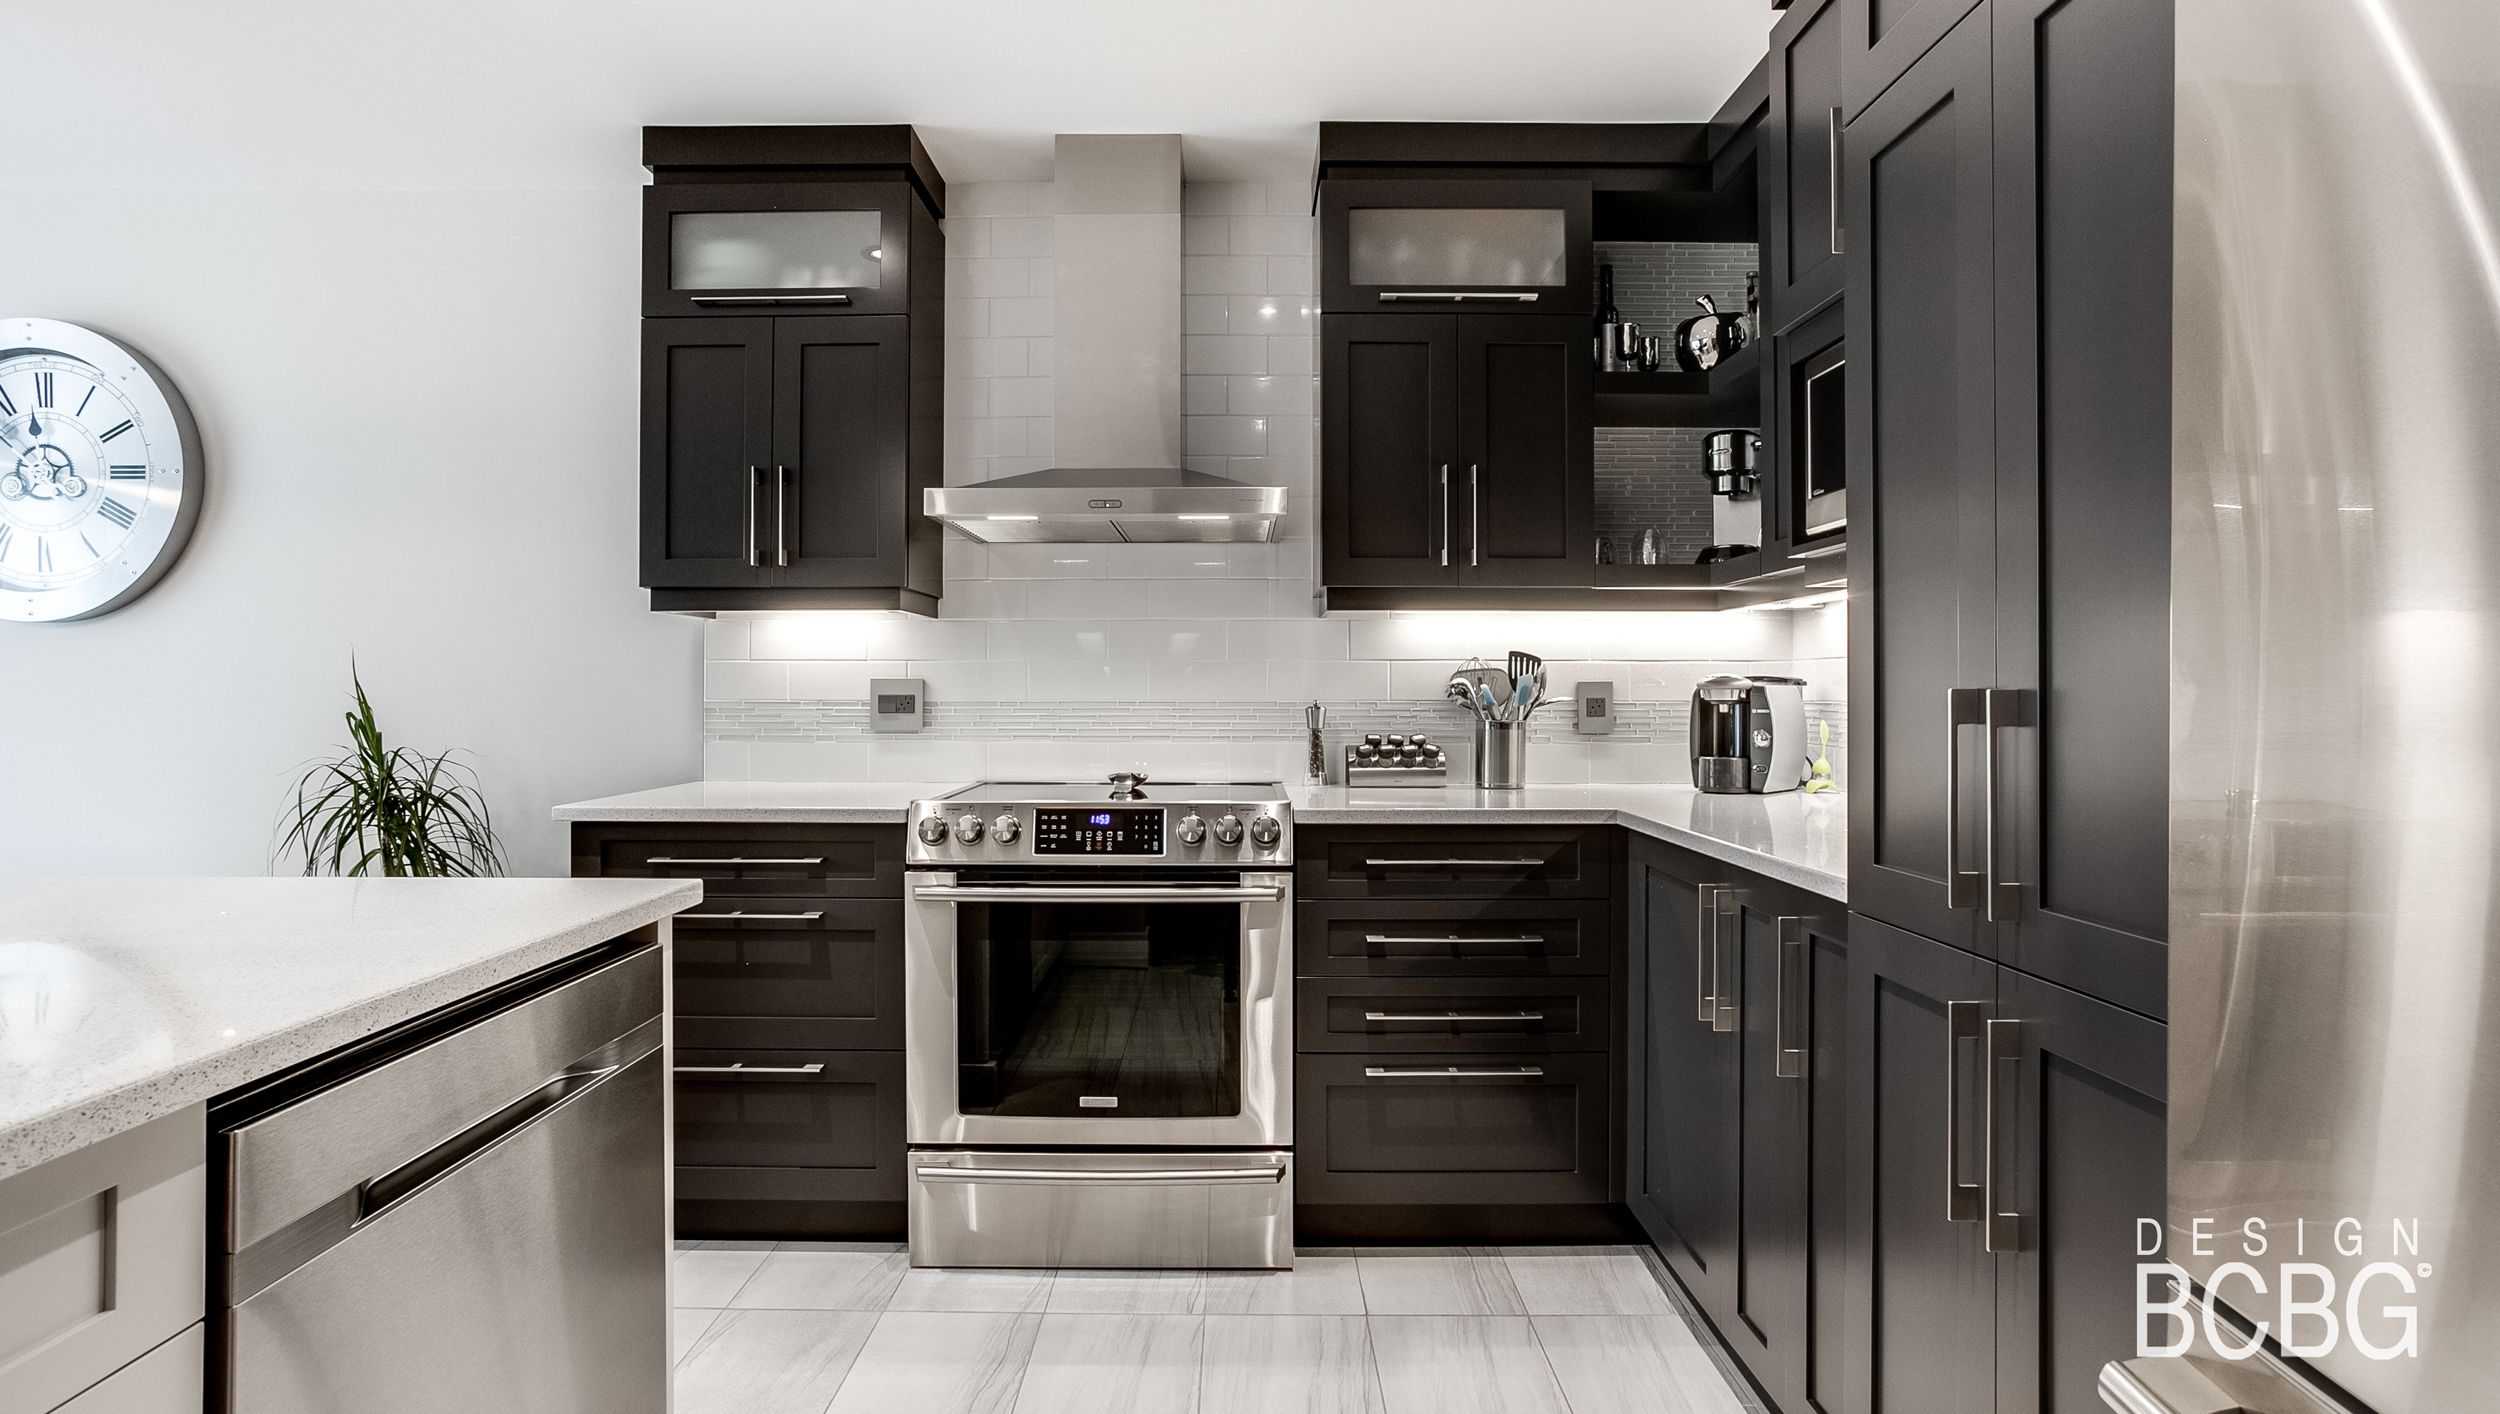 Classic Kitchen Style With Maple Cabinet Painted In Black Lacquer Classic Kitchen Style Classic Kitchens Kitchen Style